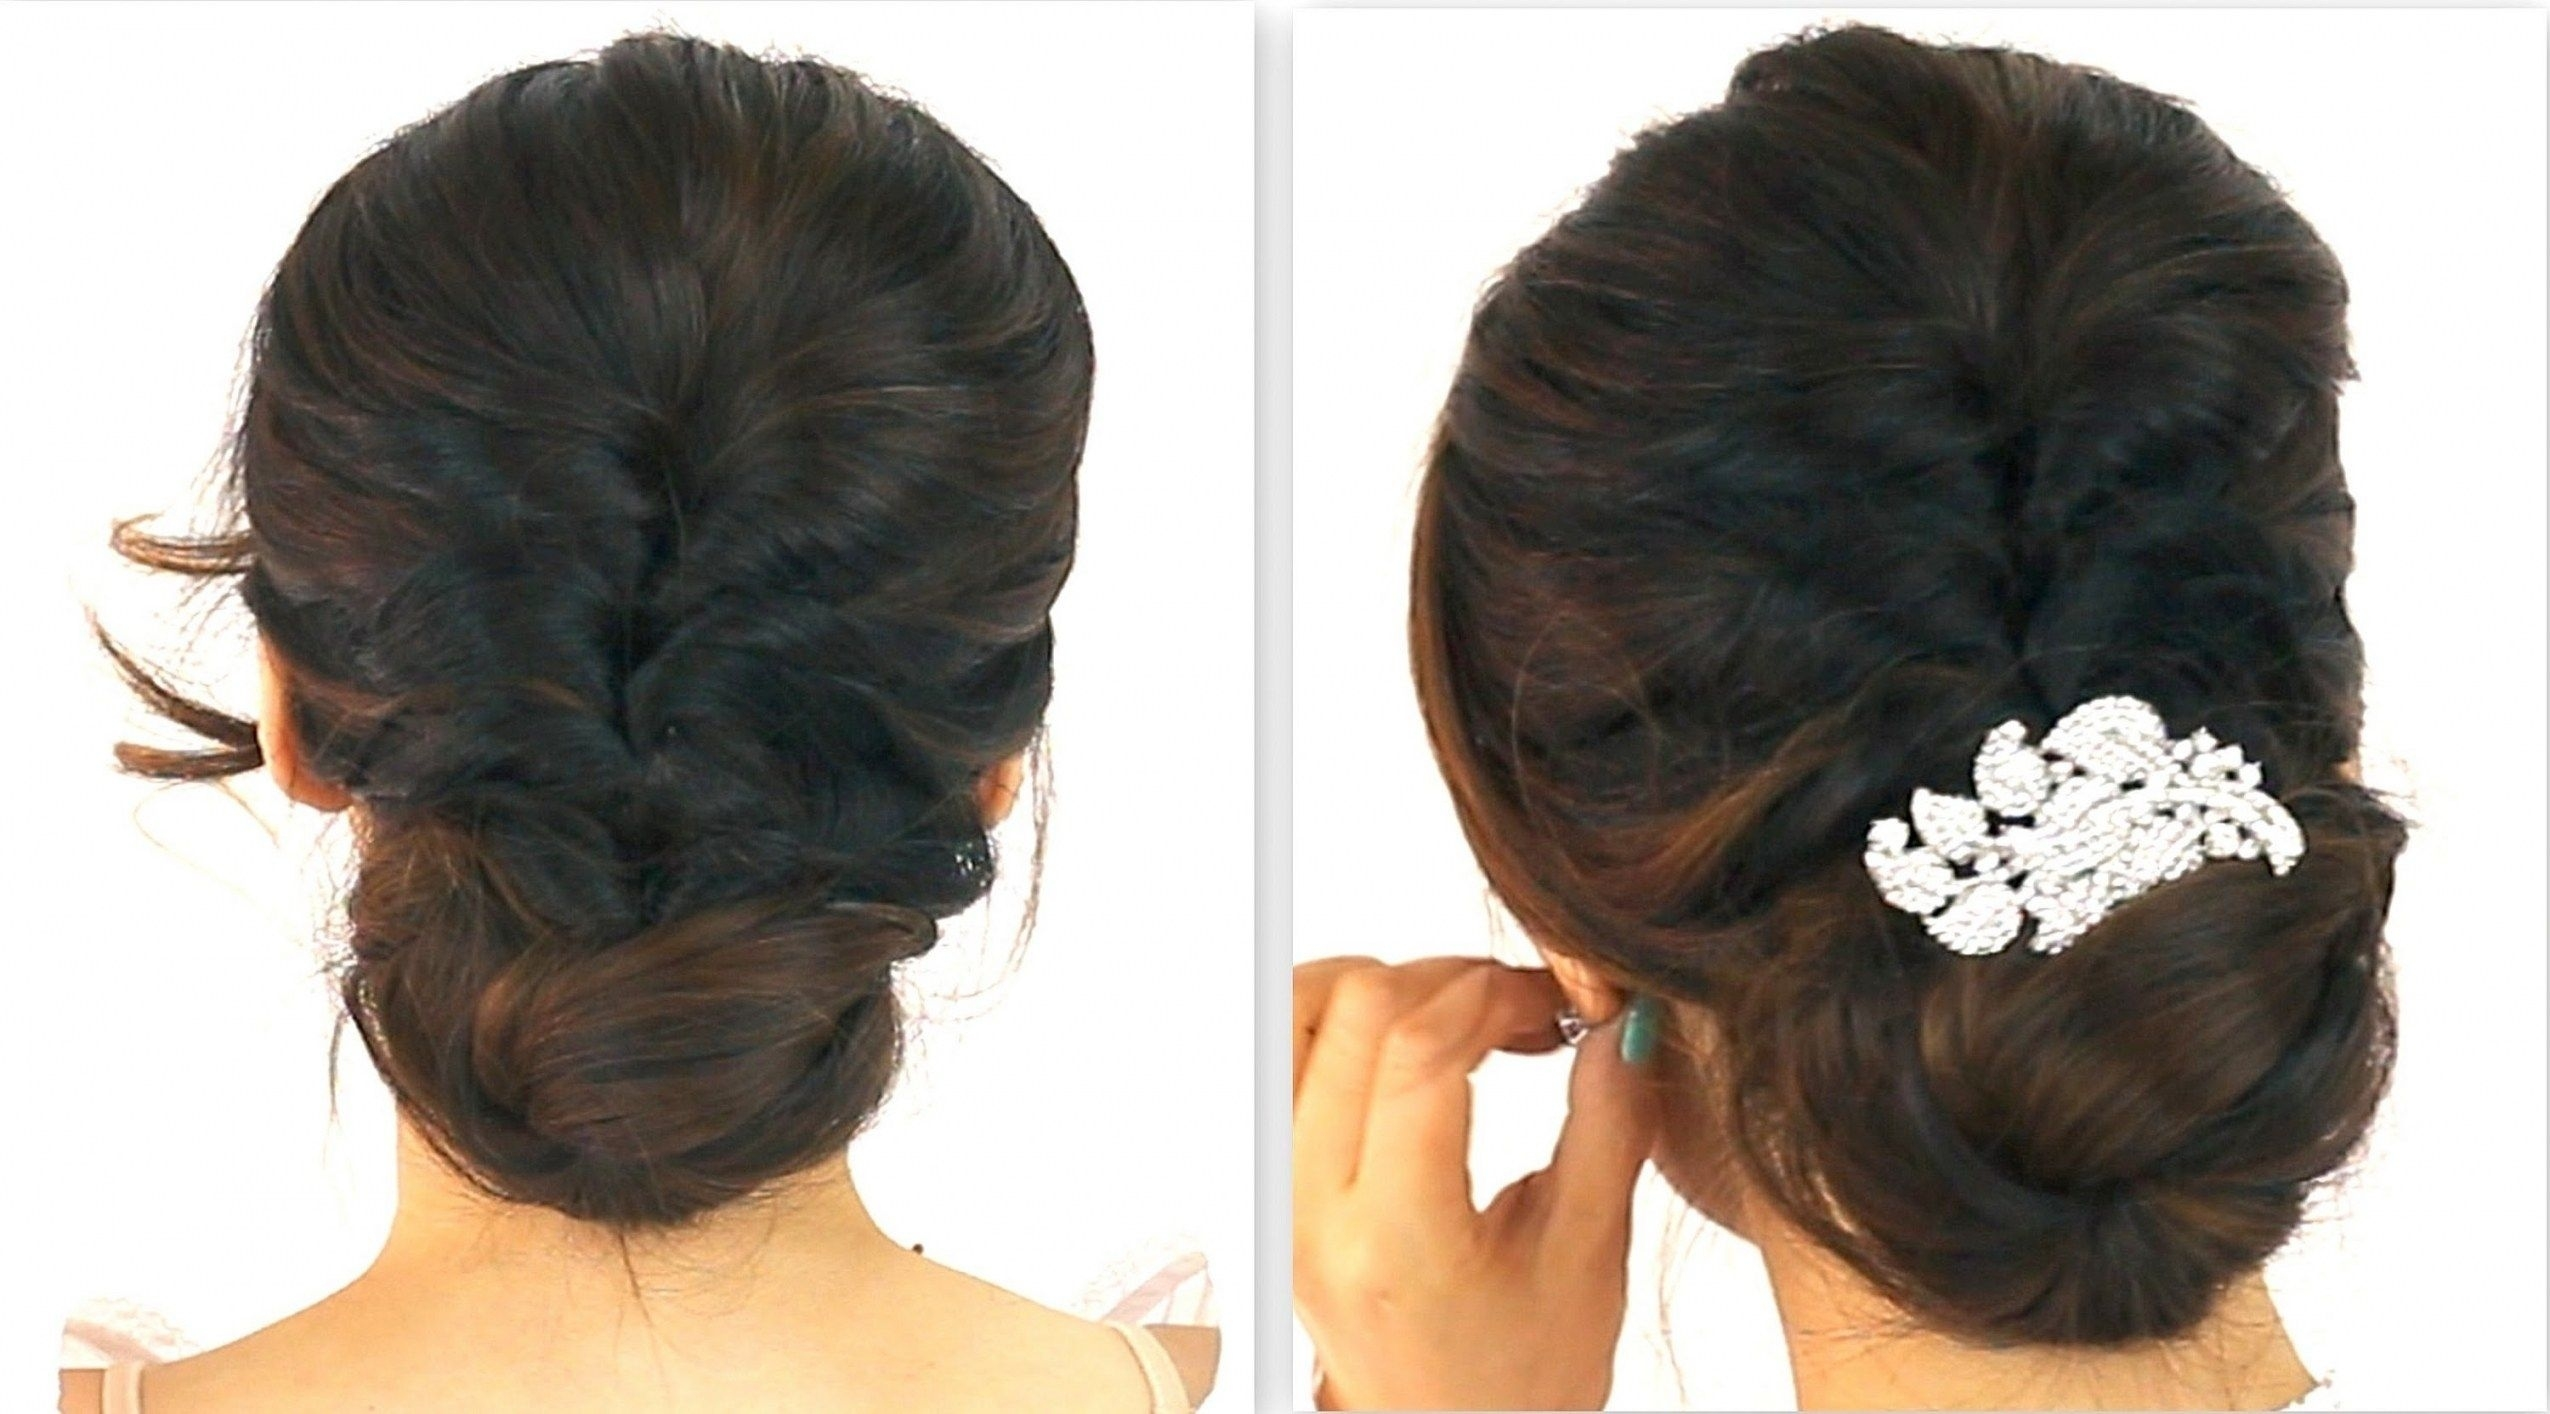 Indian Wedding Party Hairstyles For Short Hair   Hairstyles for Indian Hairstyles For Short Hair